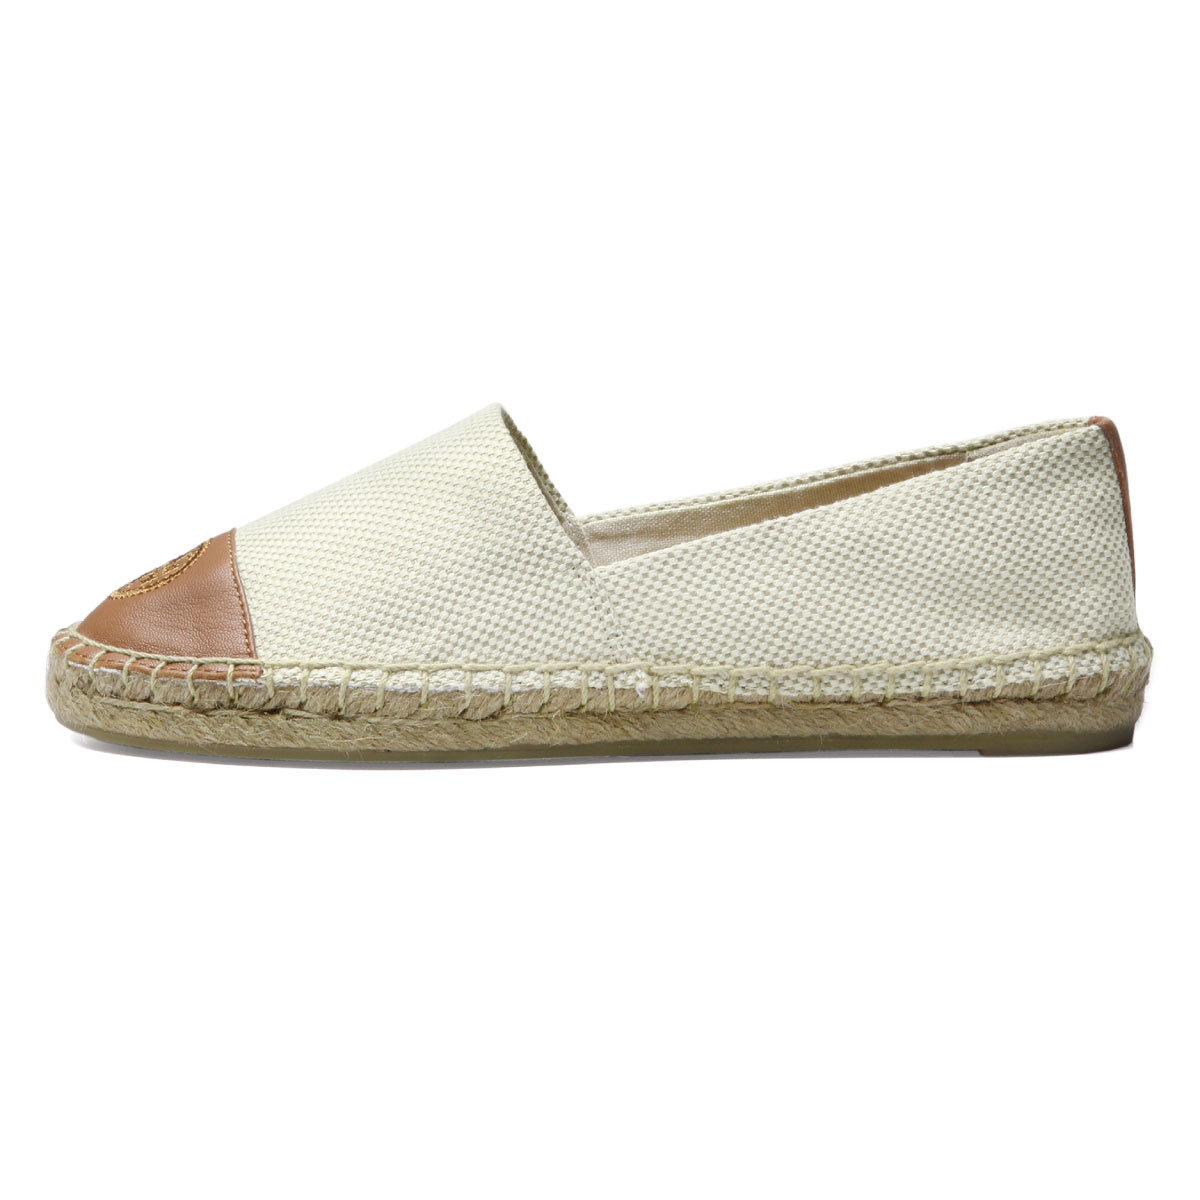 a8dd56ad2 Tolly Birch TORY BURCH shoes Lady s 47016 276 espadrille COLOR BLOCK FLAT  color block flat NATURAL TAN is beige